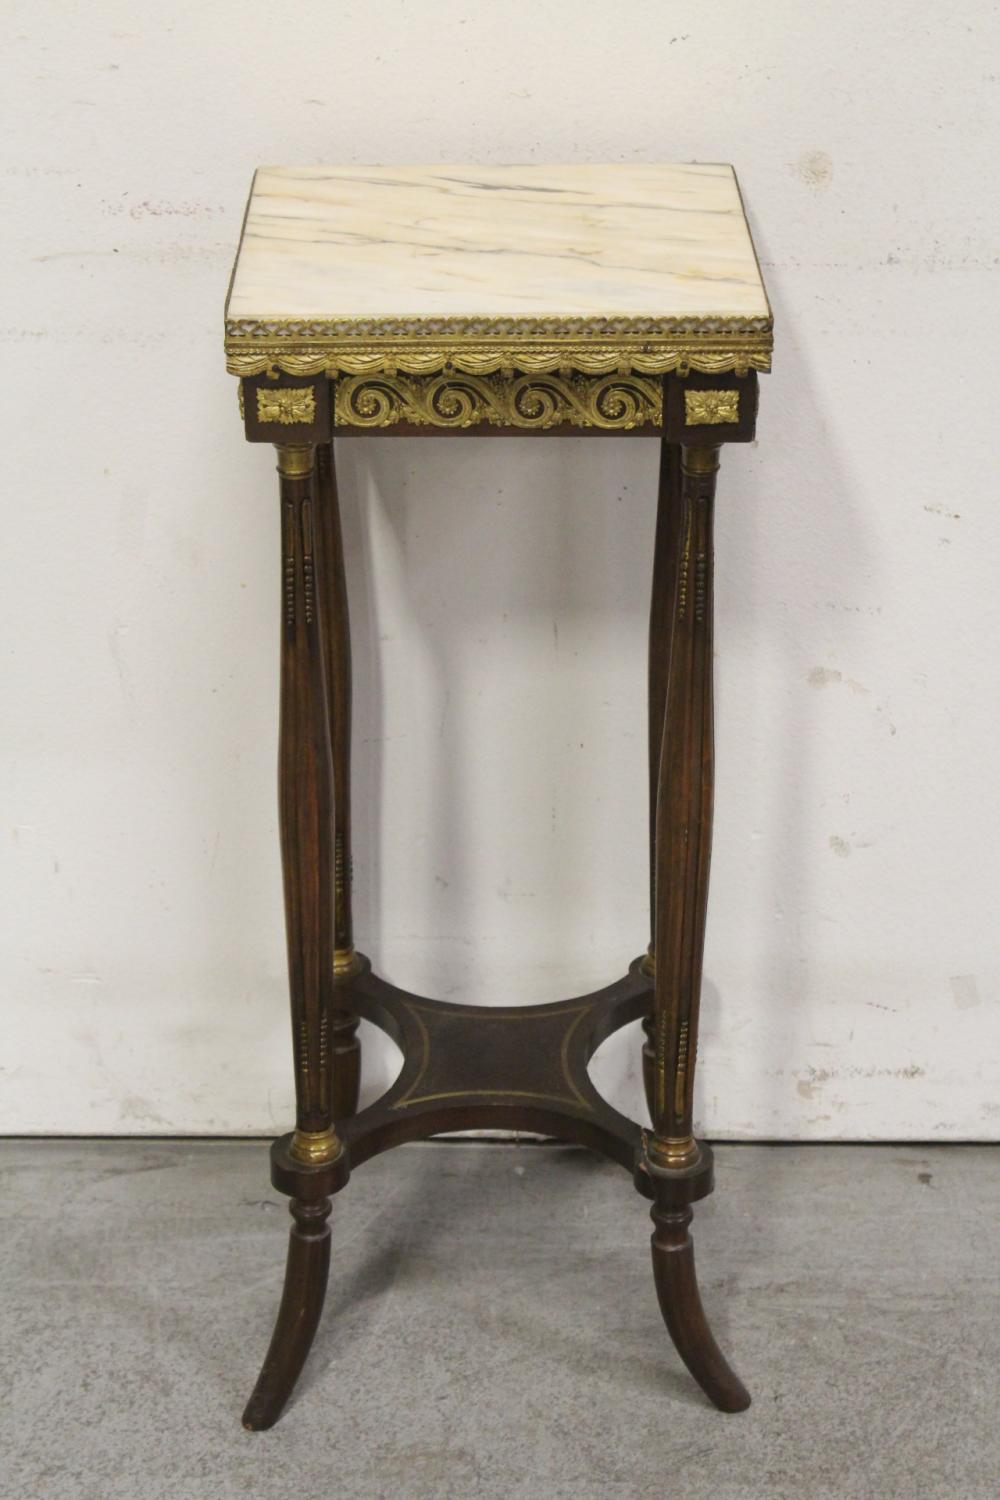 Lot 77: Marble top stand with gilt metal ormolu